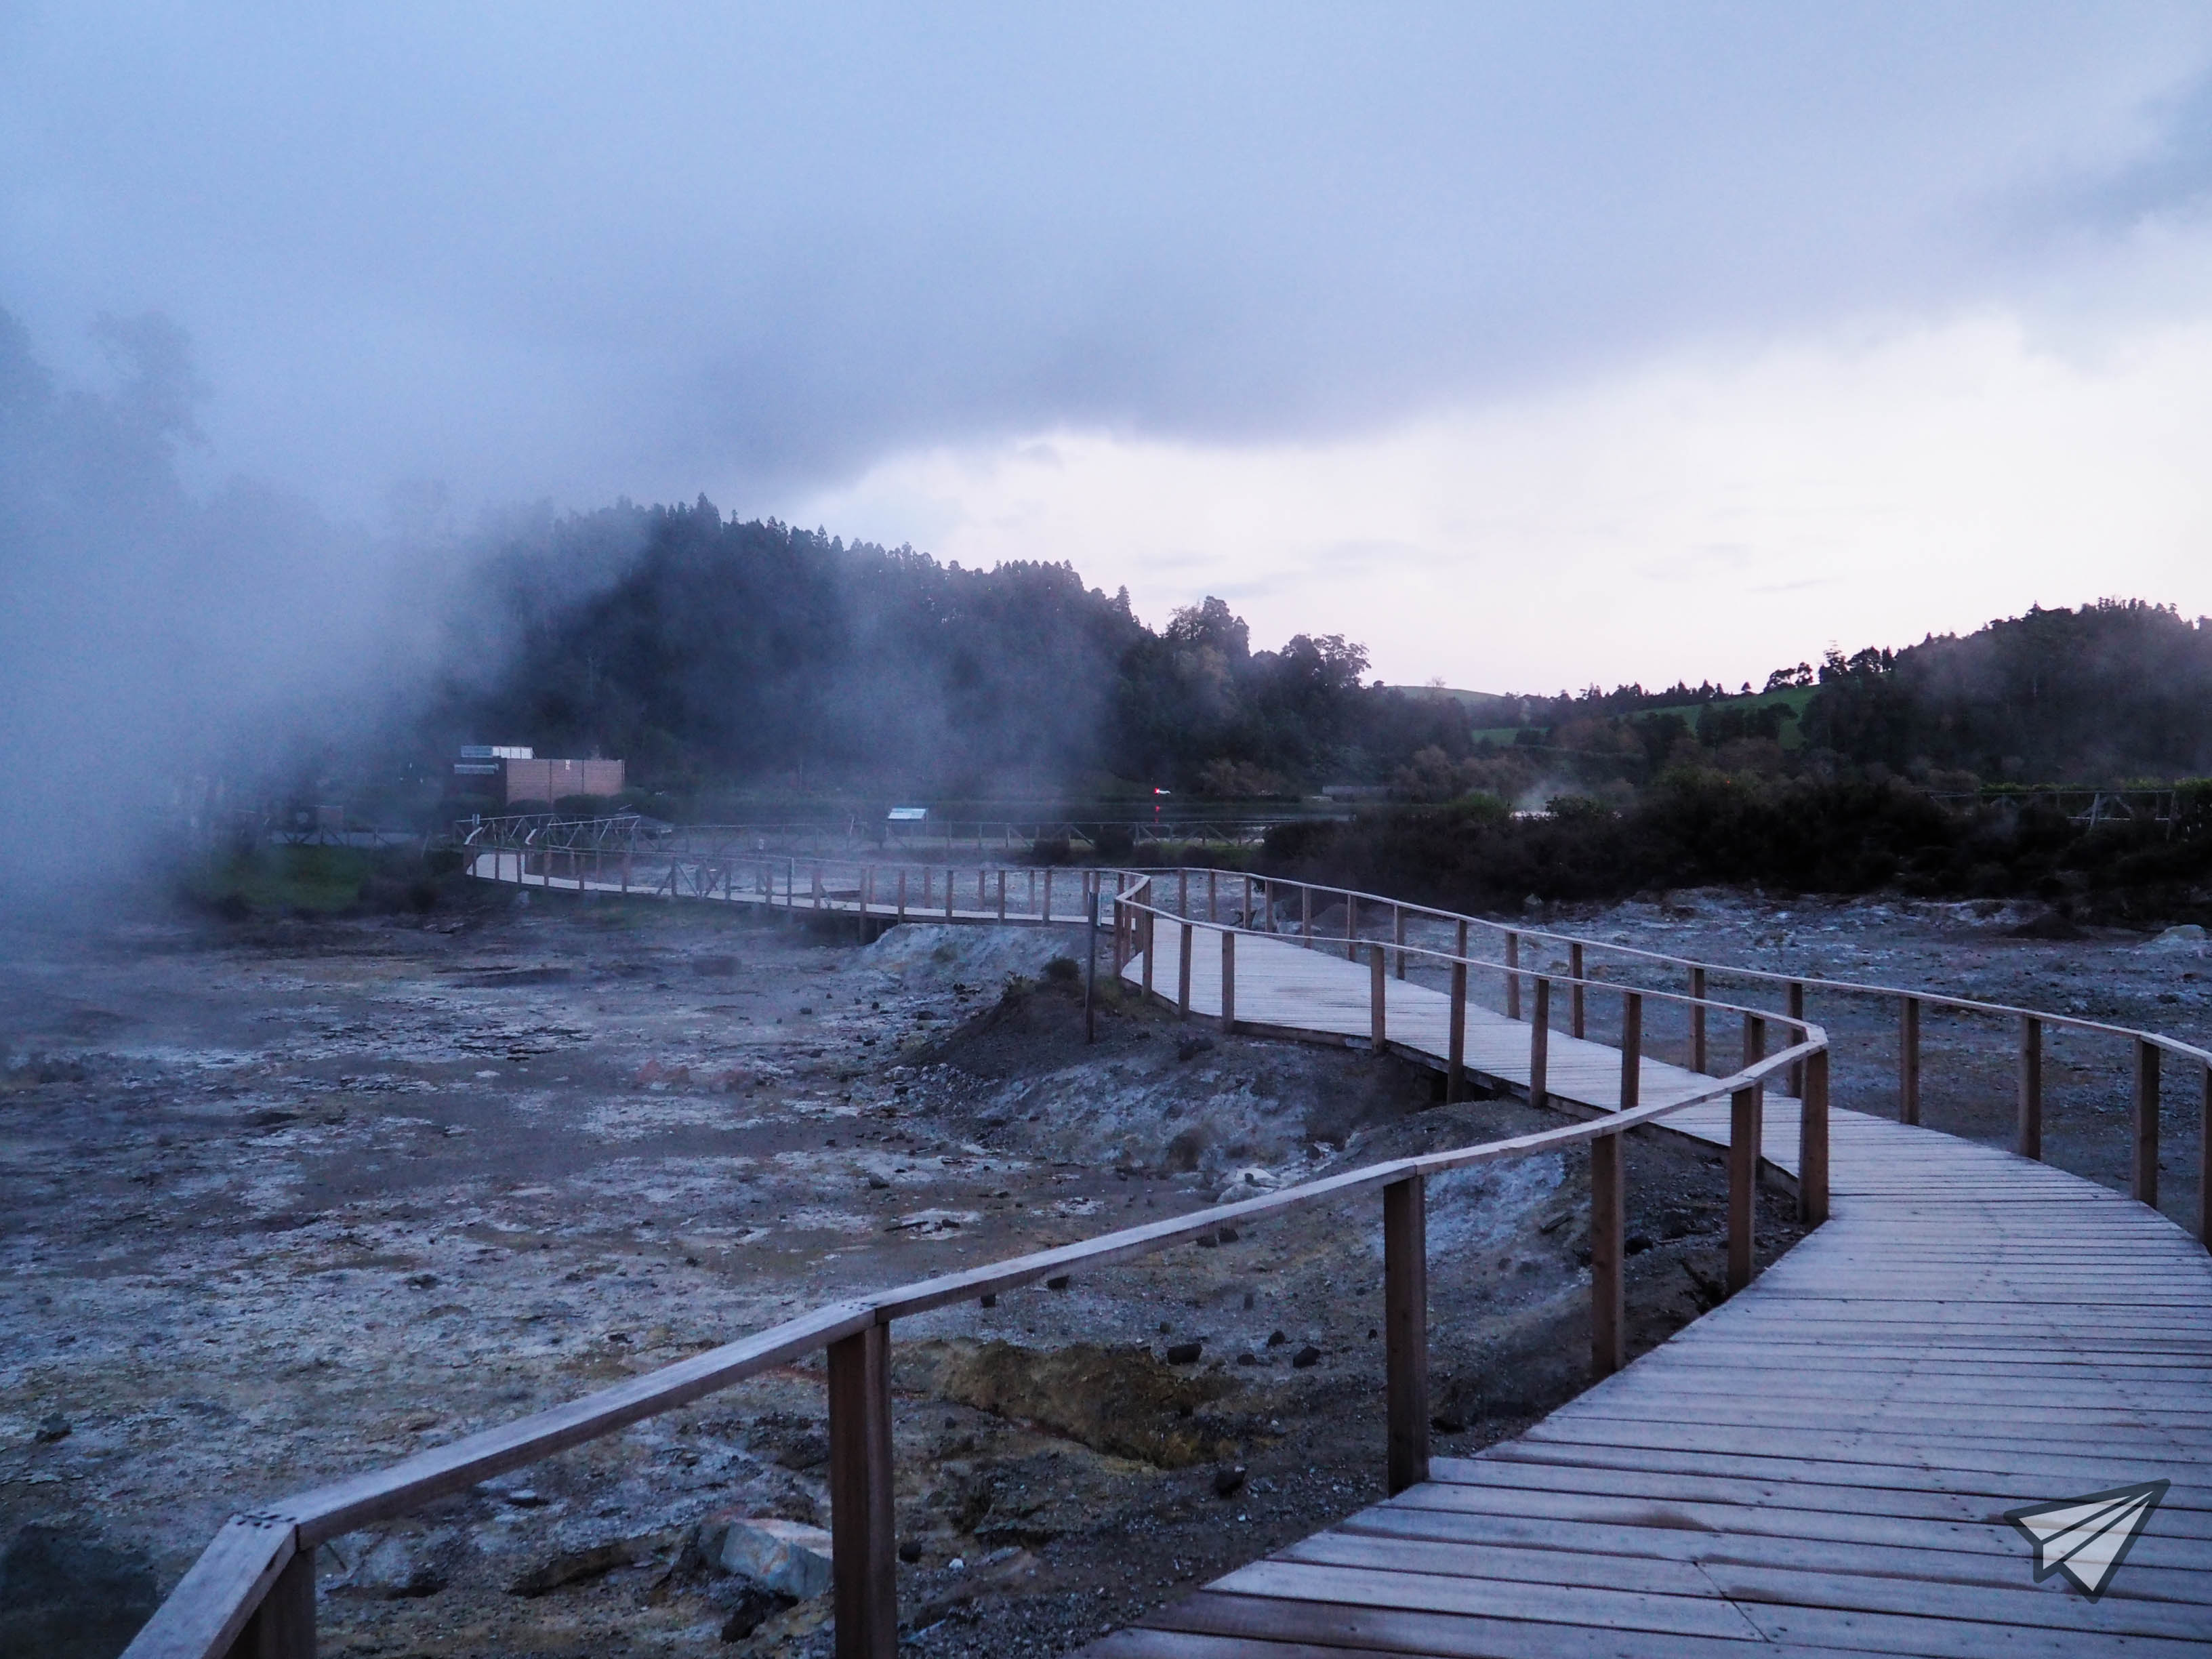 Furnas Research Center